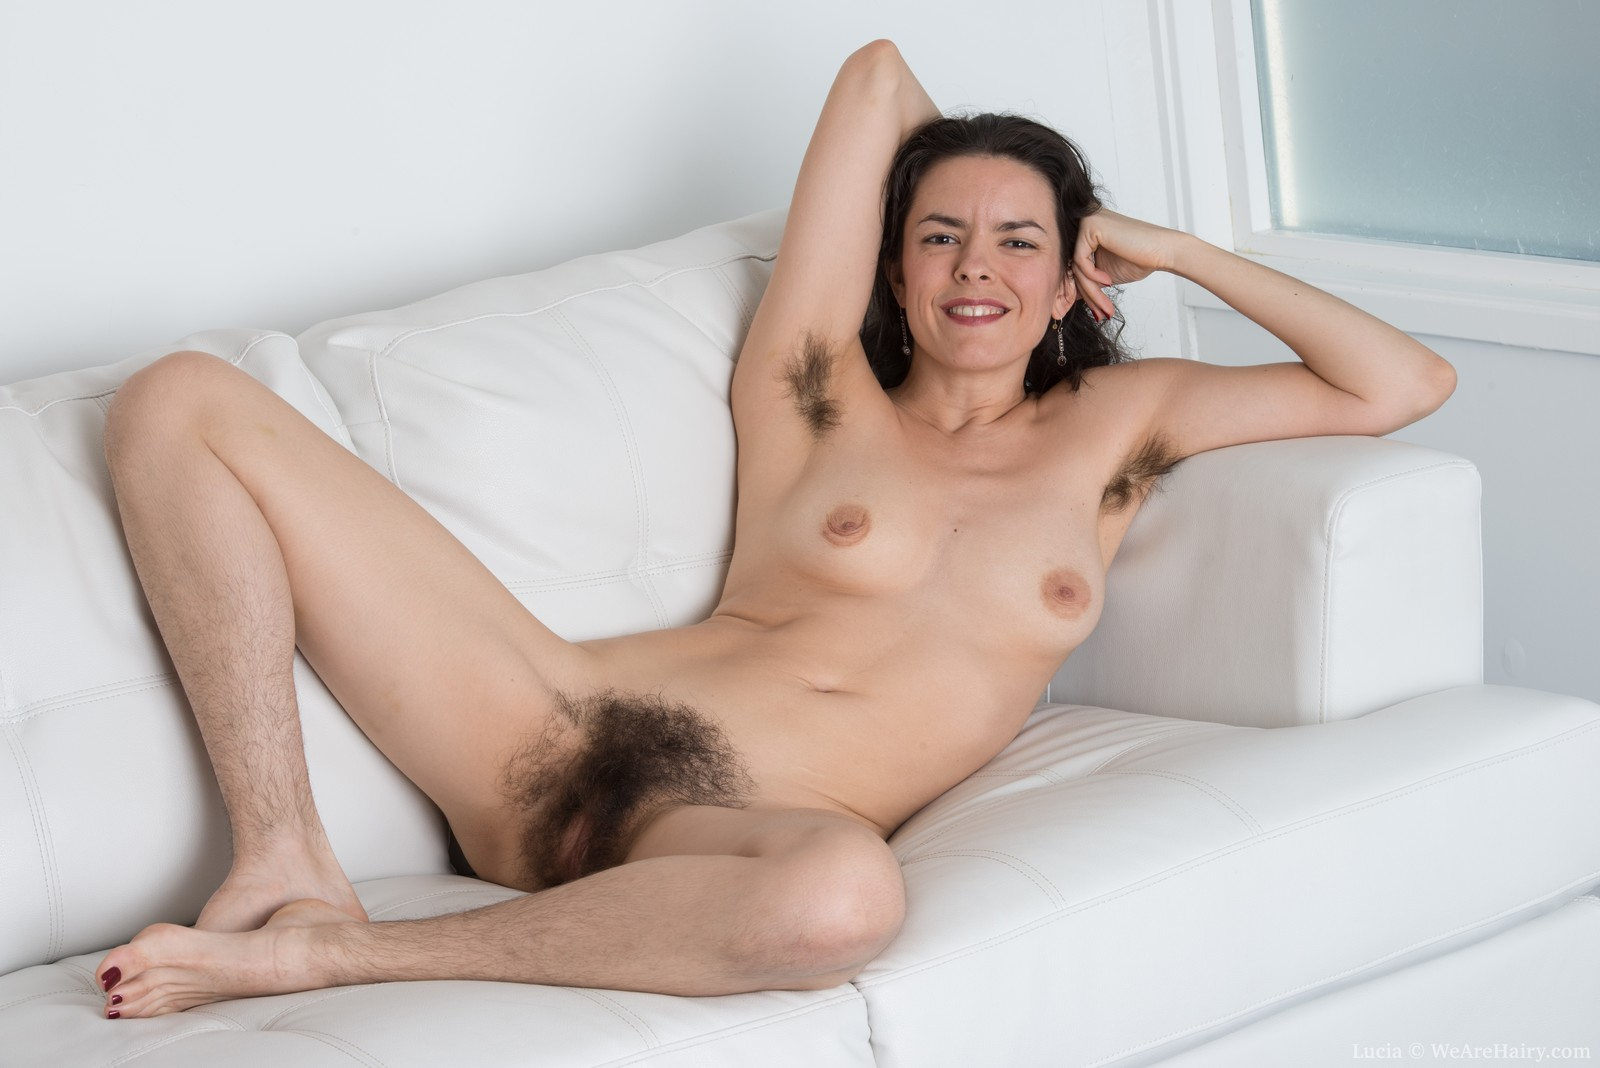 hairy erotic photos